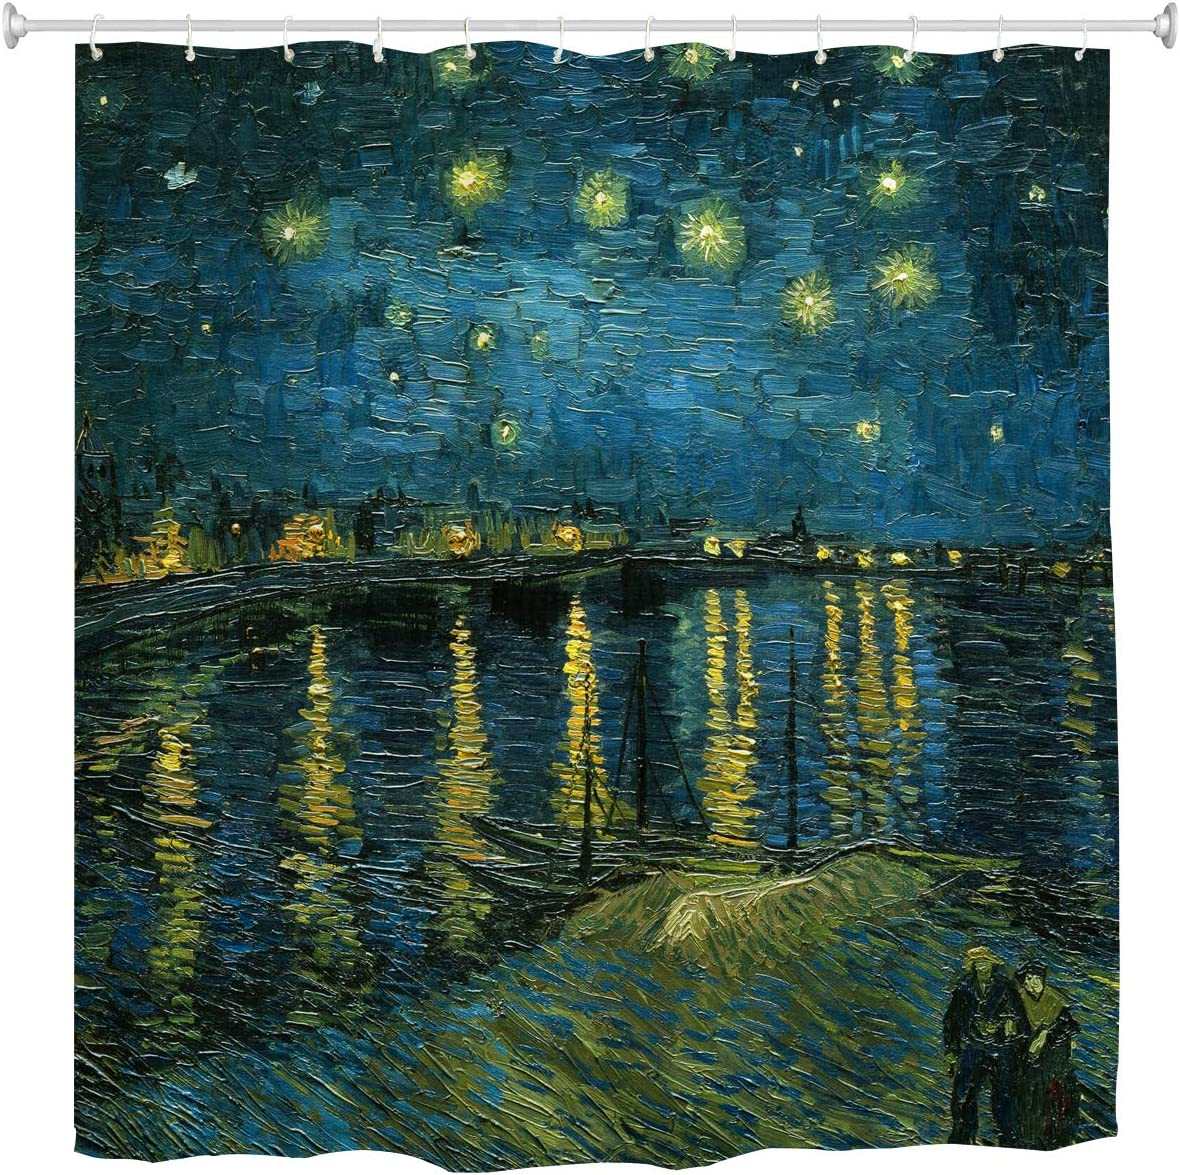 WIHVE Van Gogh Shower Curtain 72 x 72 Inches, Starry Night Over The Rhone Bathroom Curtains Resistant Waterproof Floral Fabric Curtain for Bath Decorations with 12 pcs Plastic Hooks